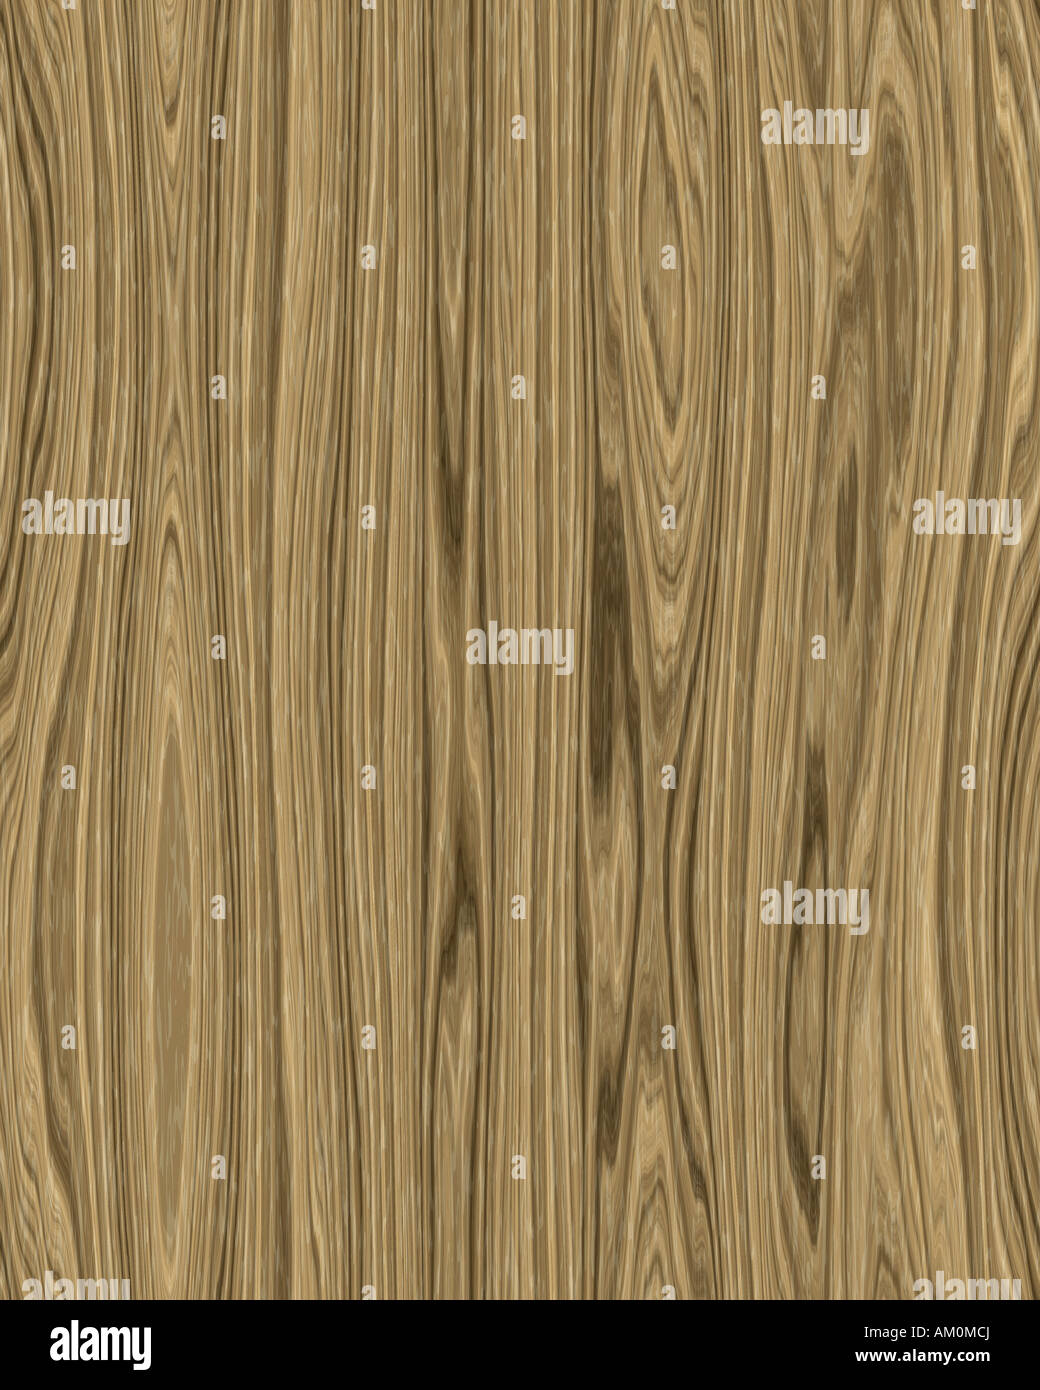 A Large Sheet Of A Nice Grainy Wood Texture Stock Photo 15109841